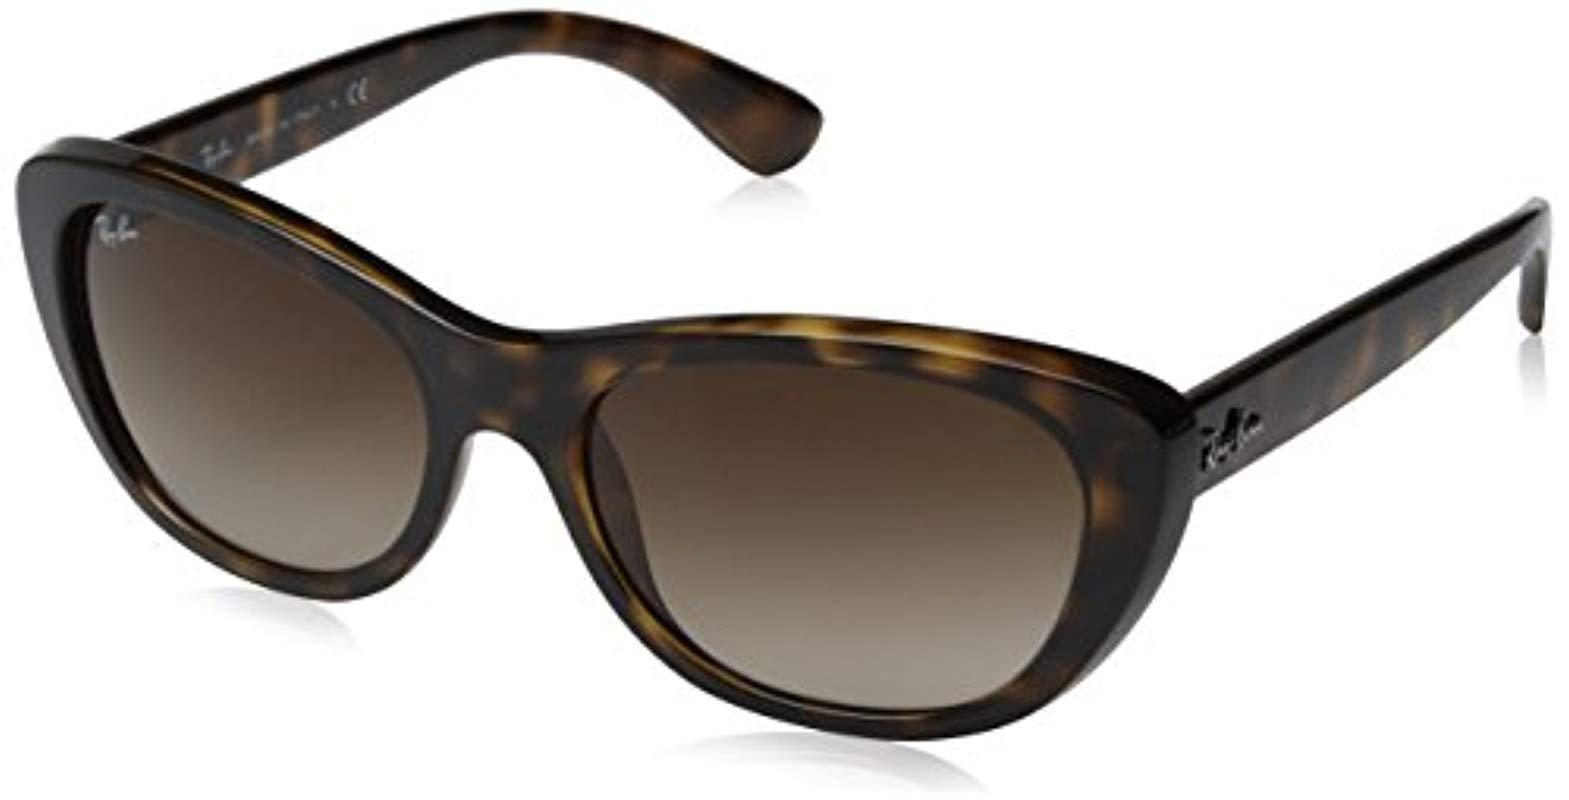 26032e616d Ray-Ban Sonnenbrille (rb 4227) in Black - Lyst